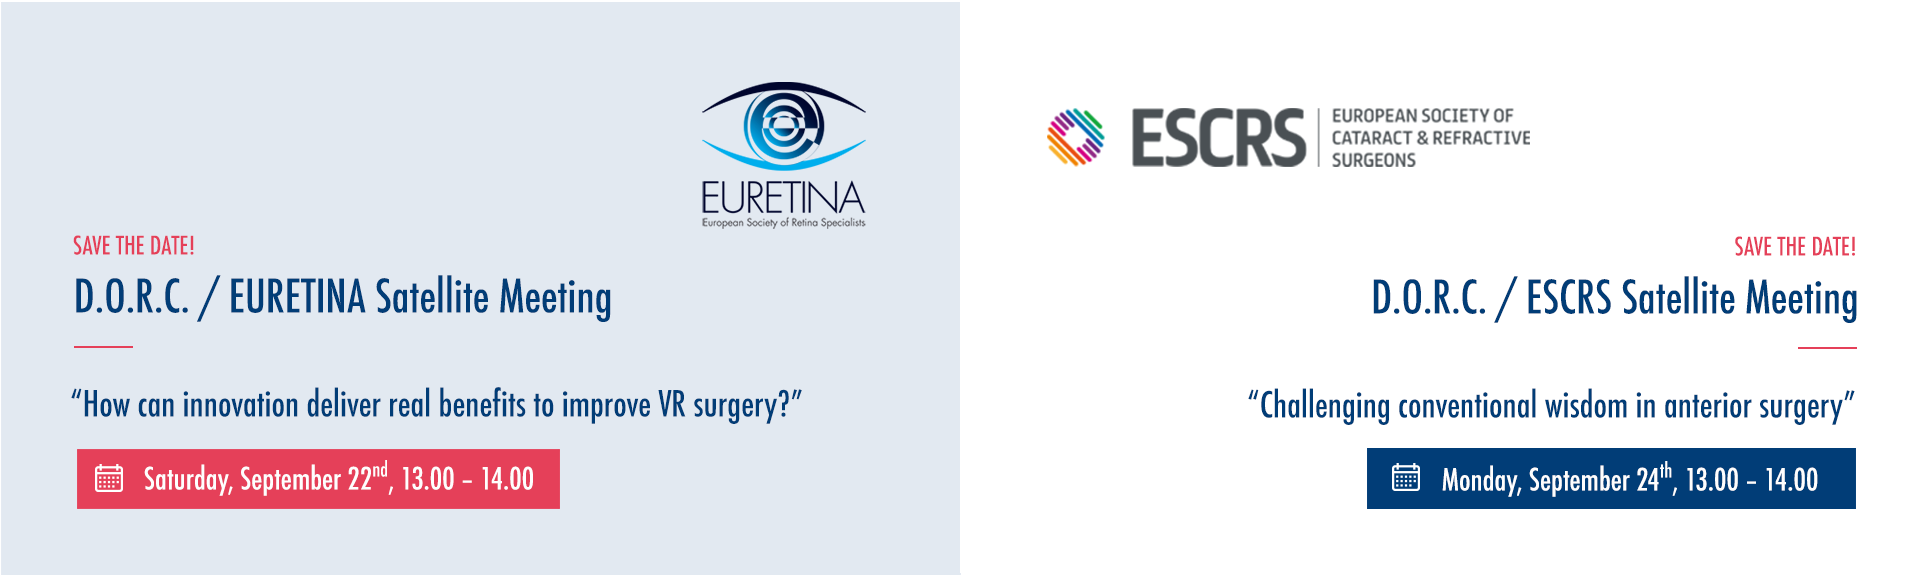 Save the date! D.O.R.C. Satellite Meetings at EURETINA and ESCRS